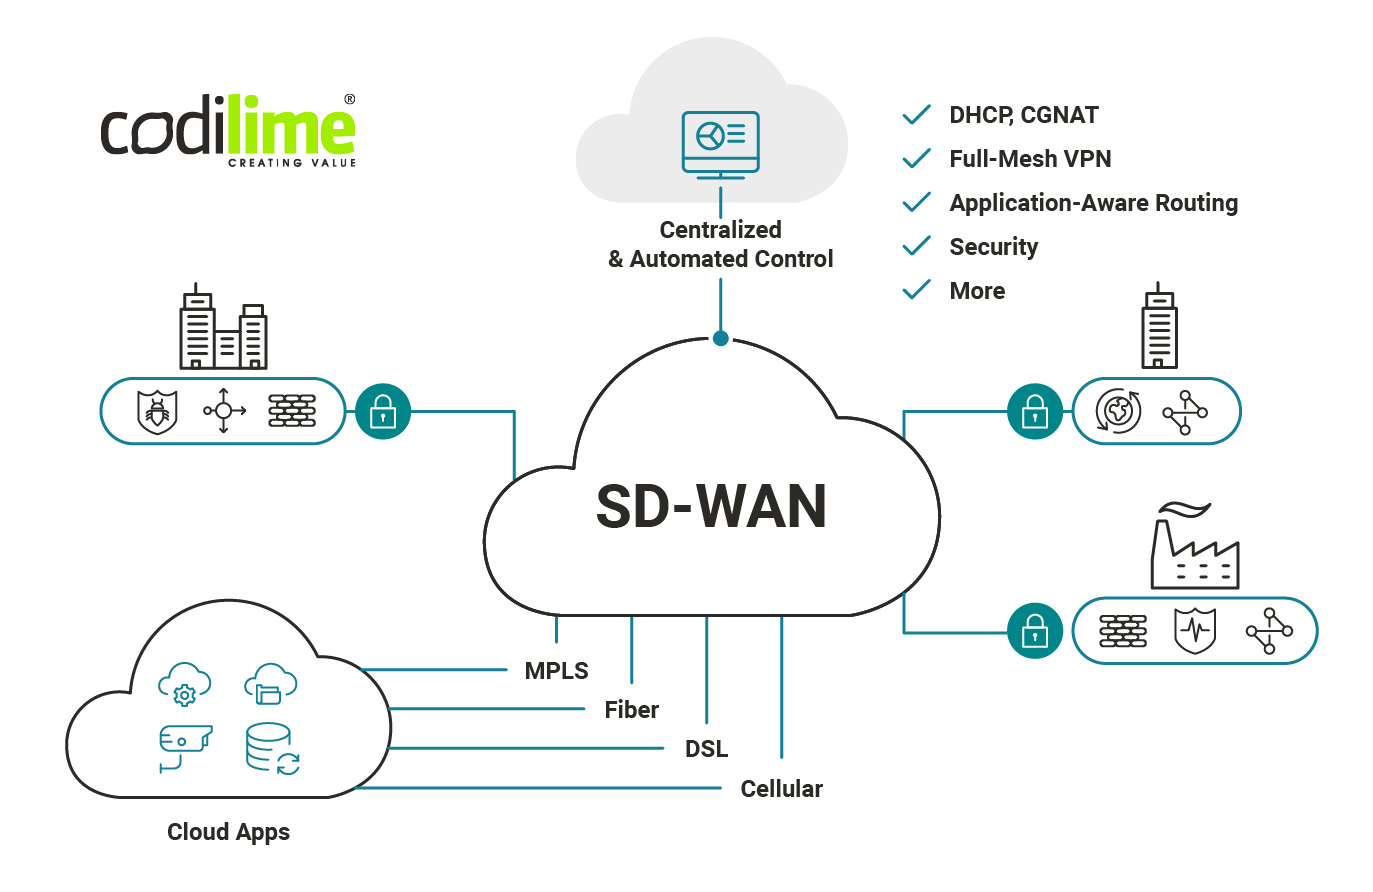 SD-WAN as a base network infrastructure for your private cloud services